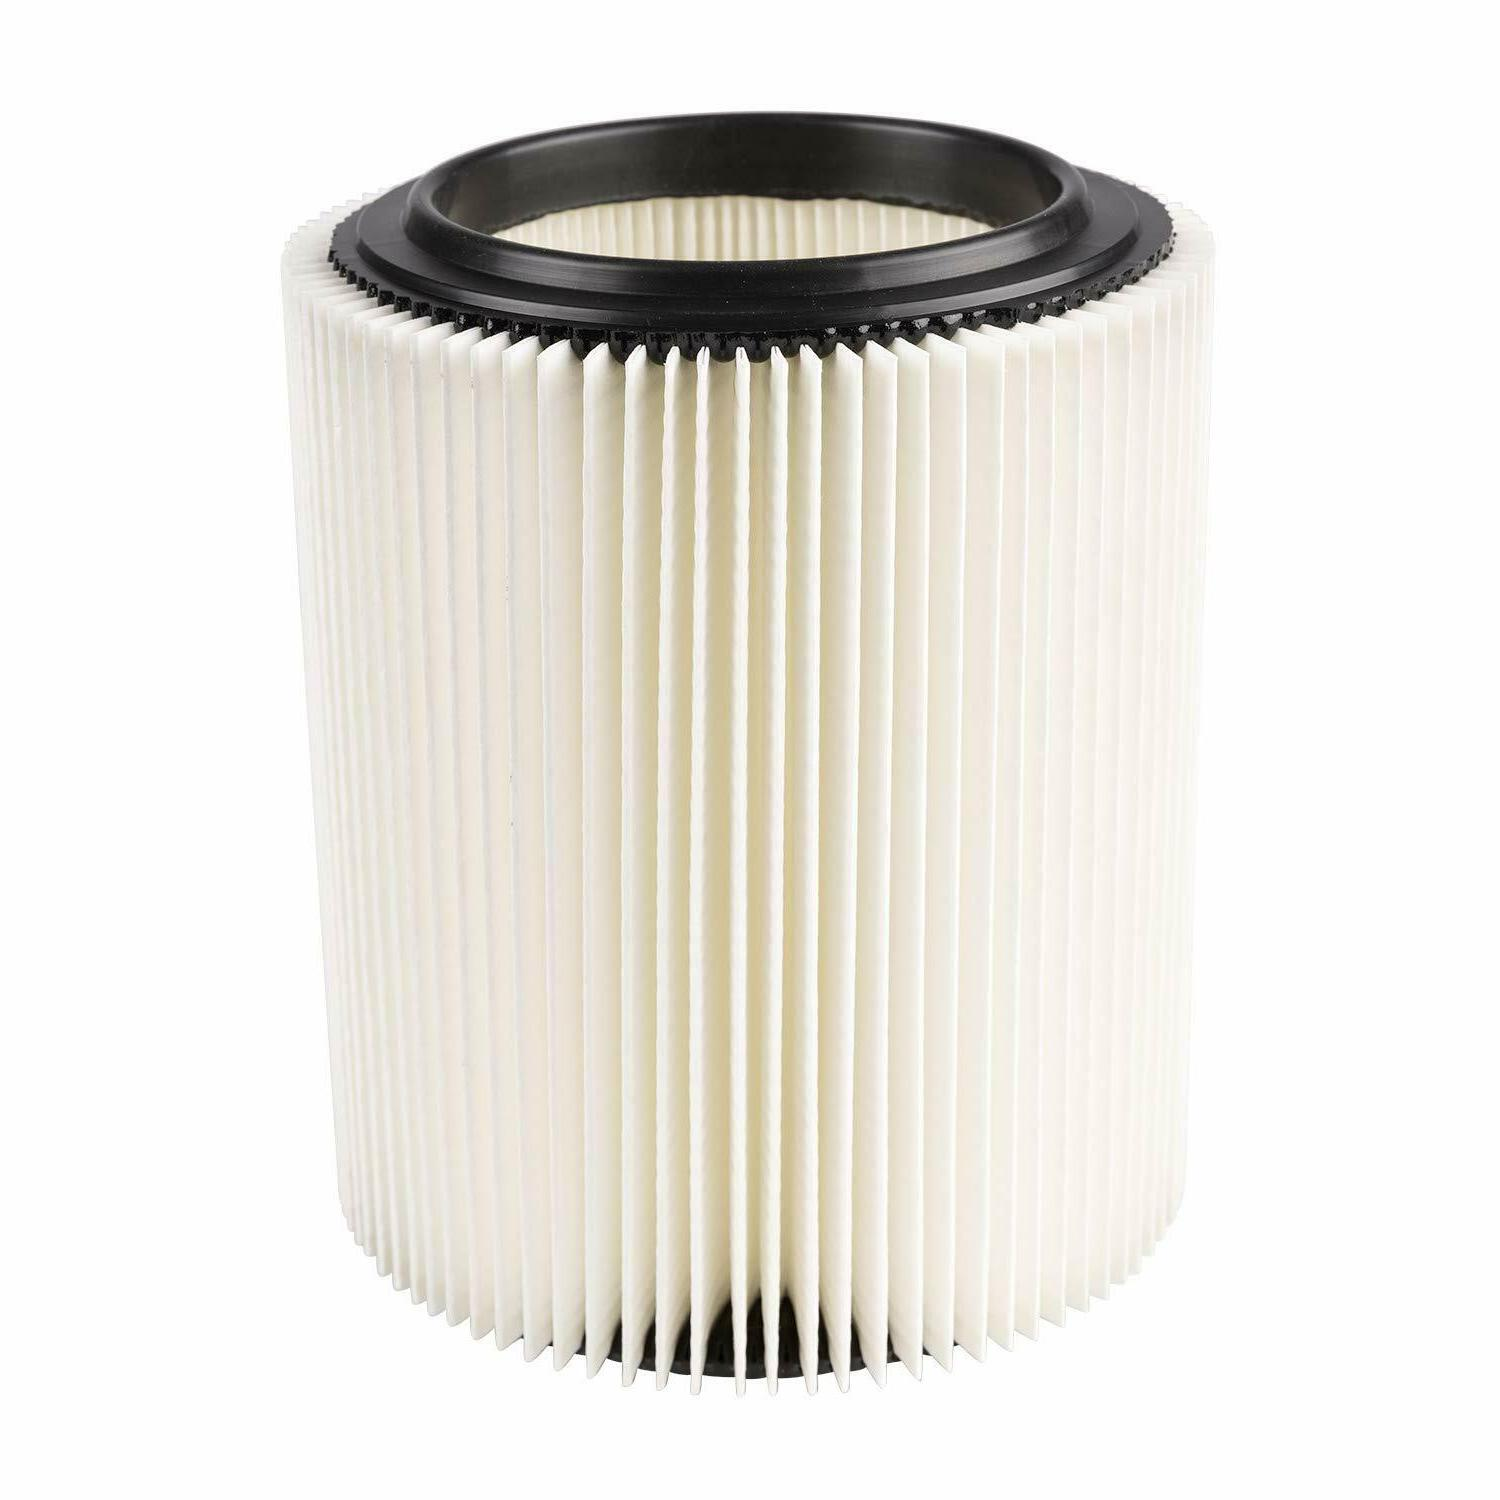 Replacement Shop Vac Filter for 6 8 12 16